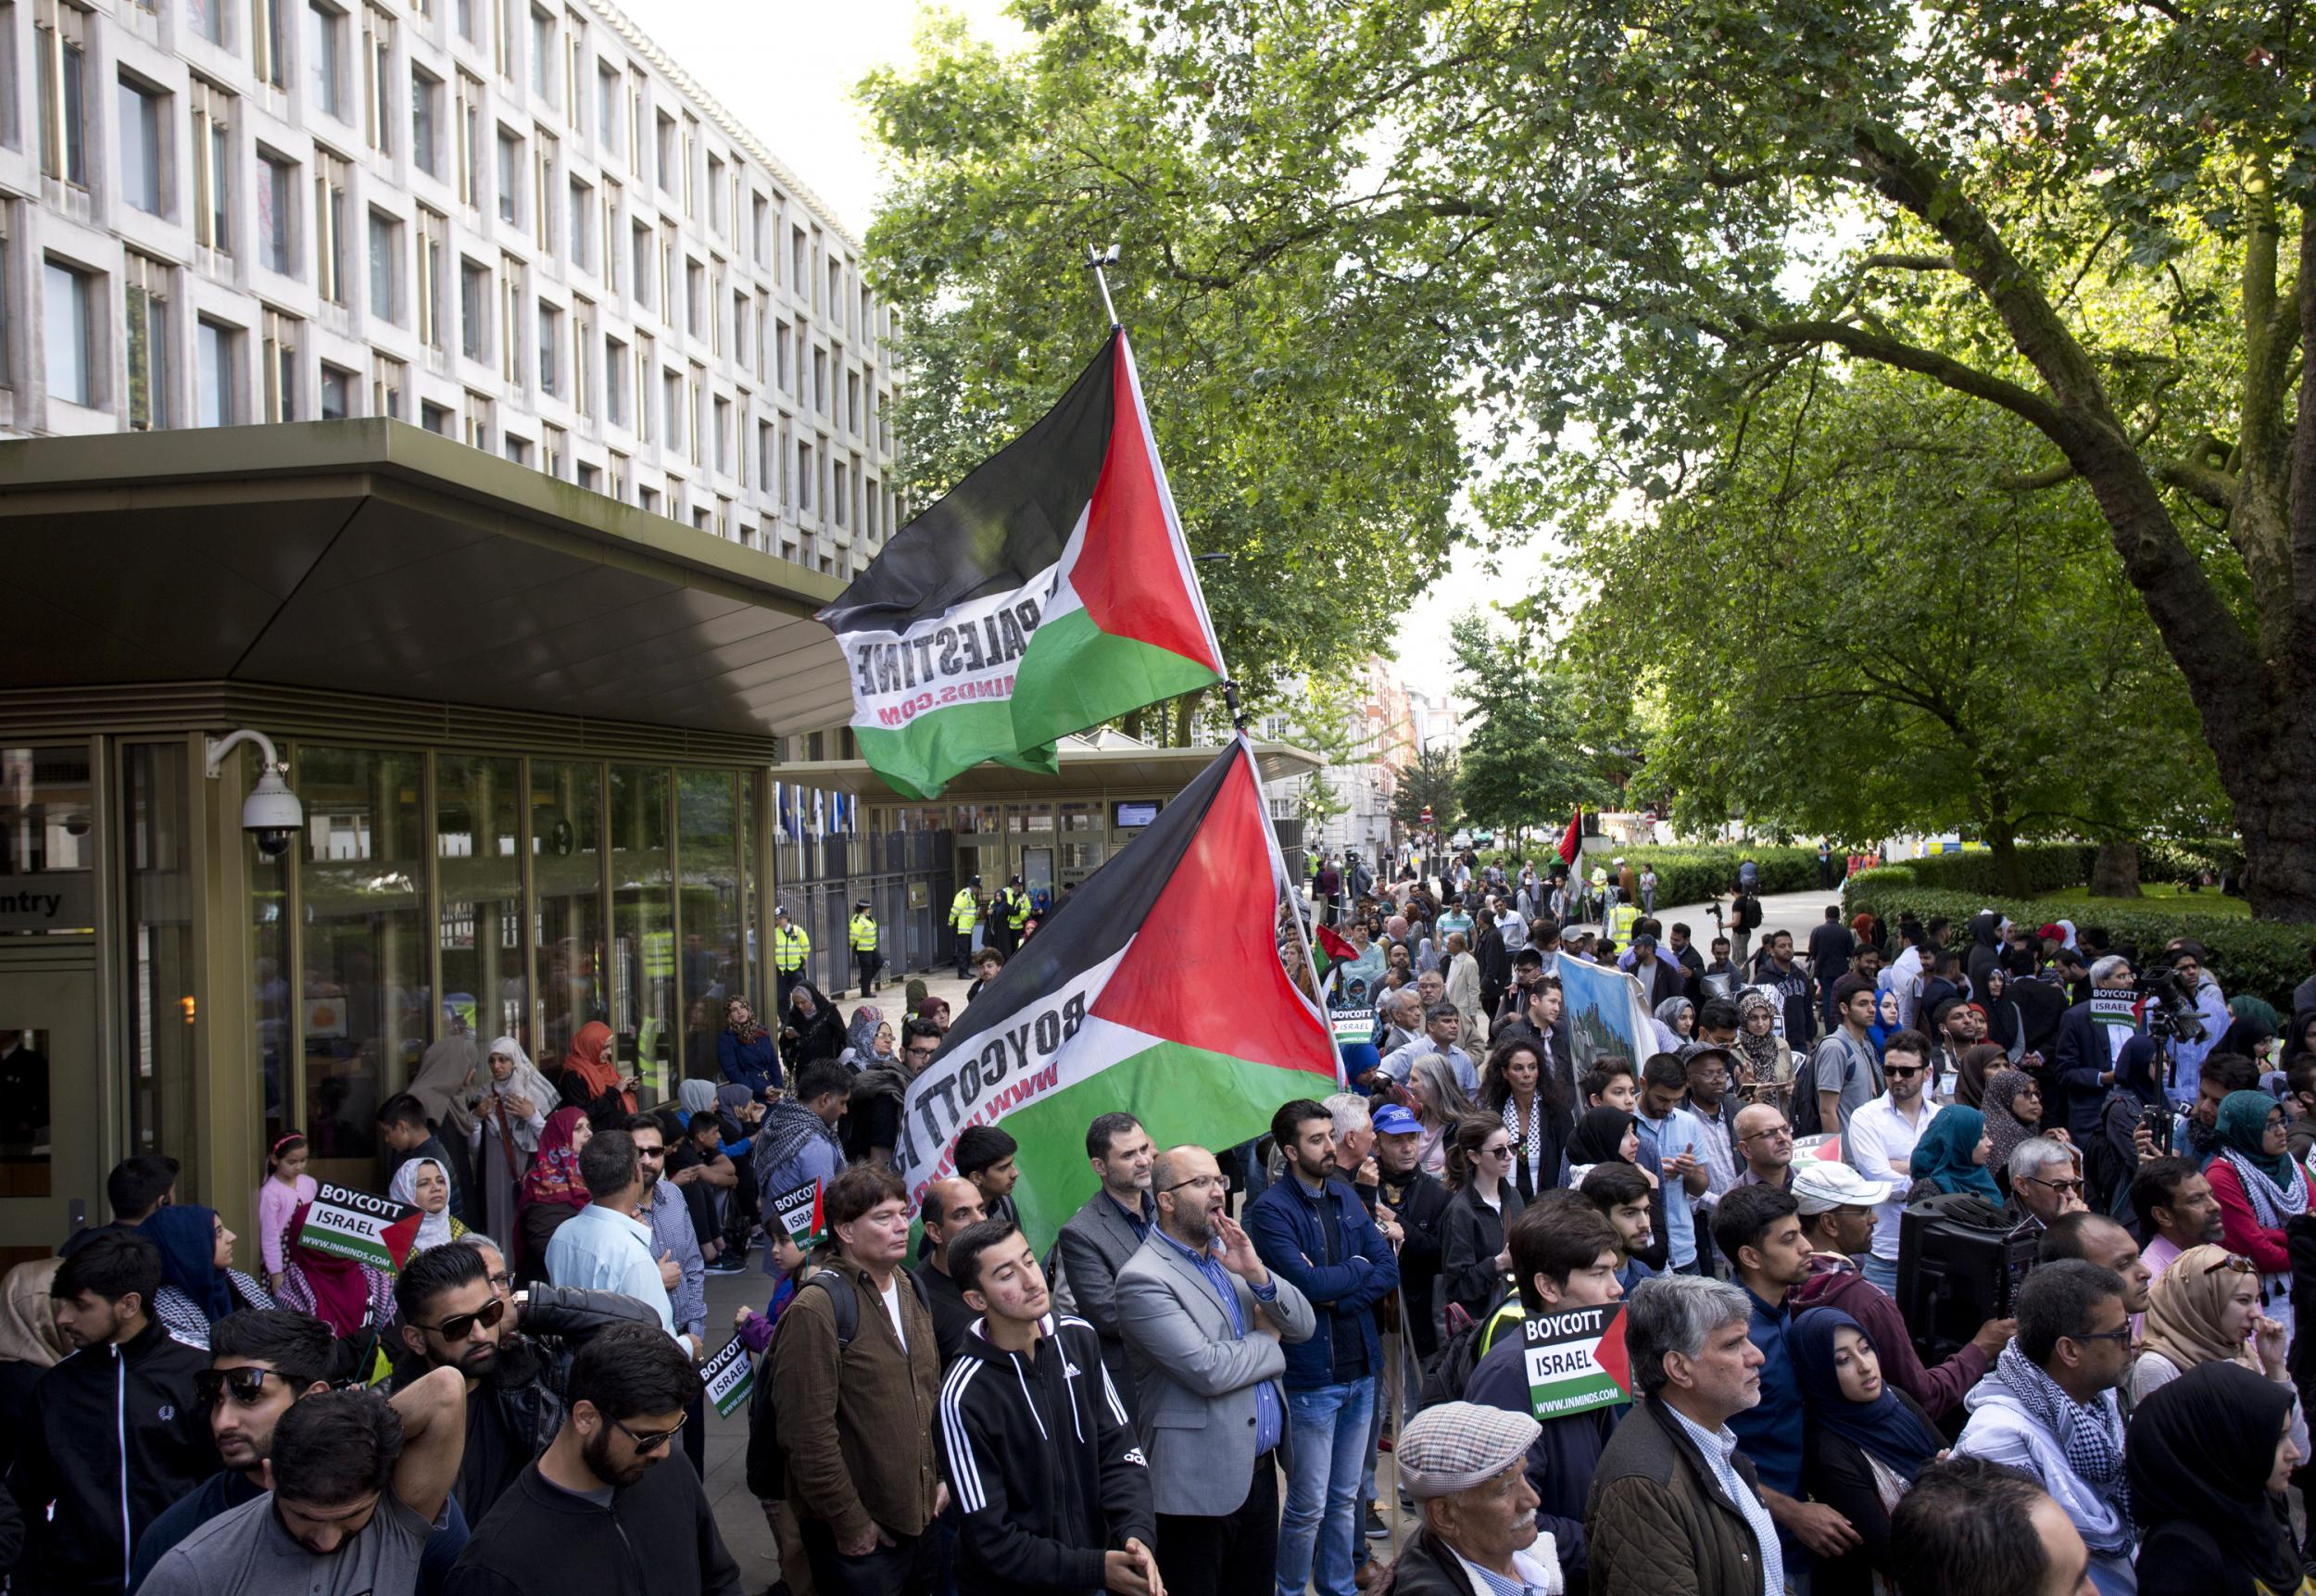 Boycotting Israel is 'lawful exercise of freedom of expression' lawyers say after British Government's ban